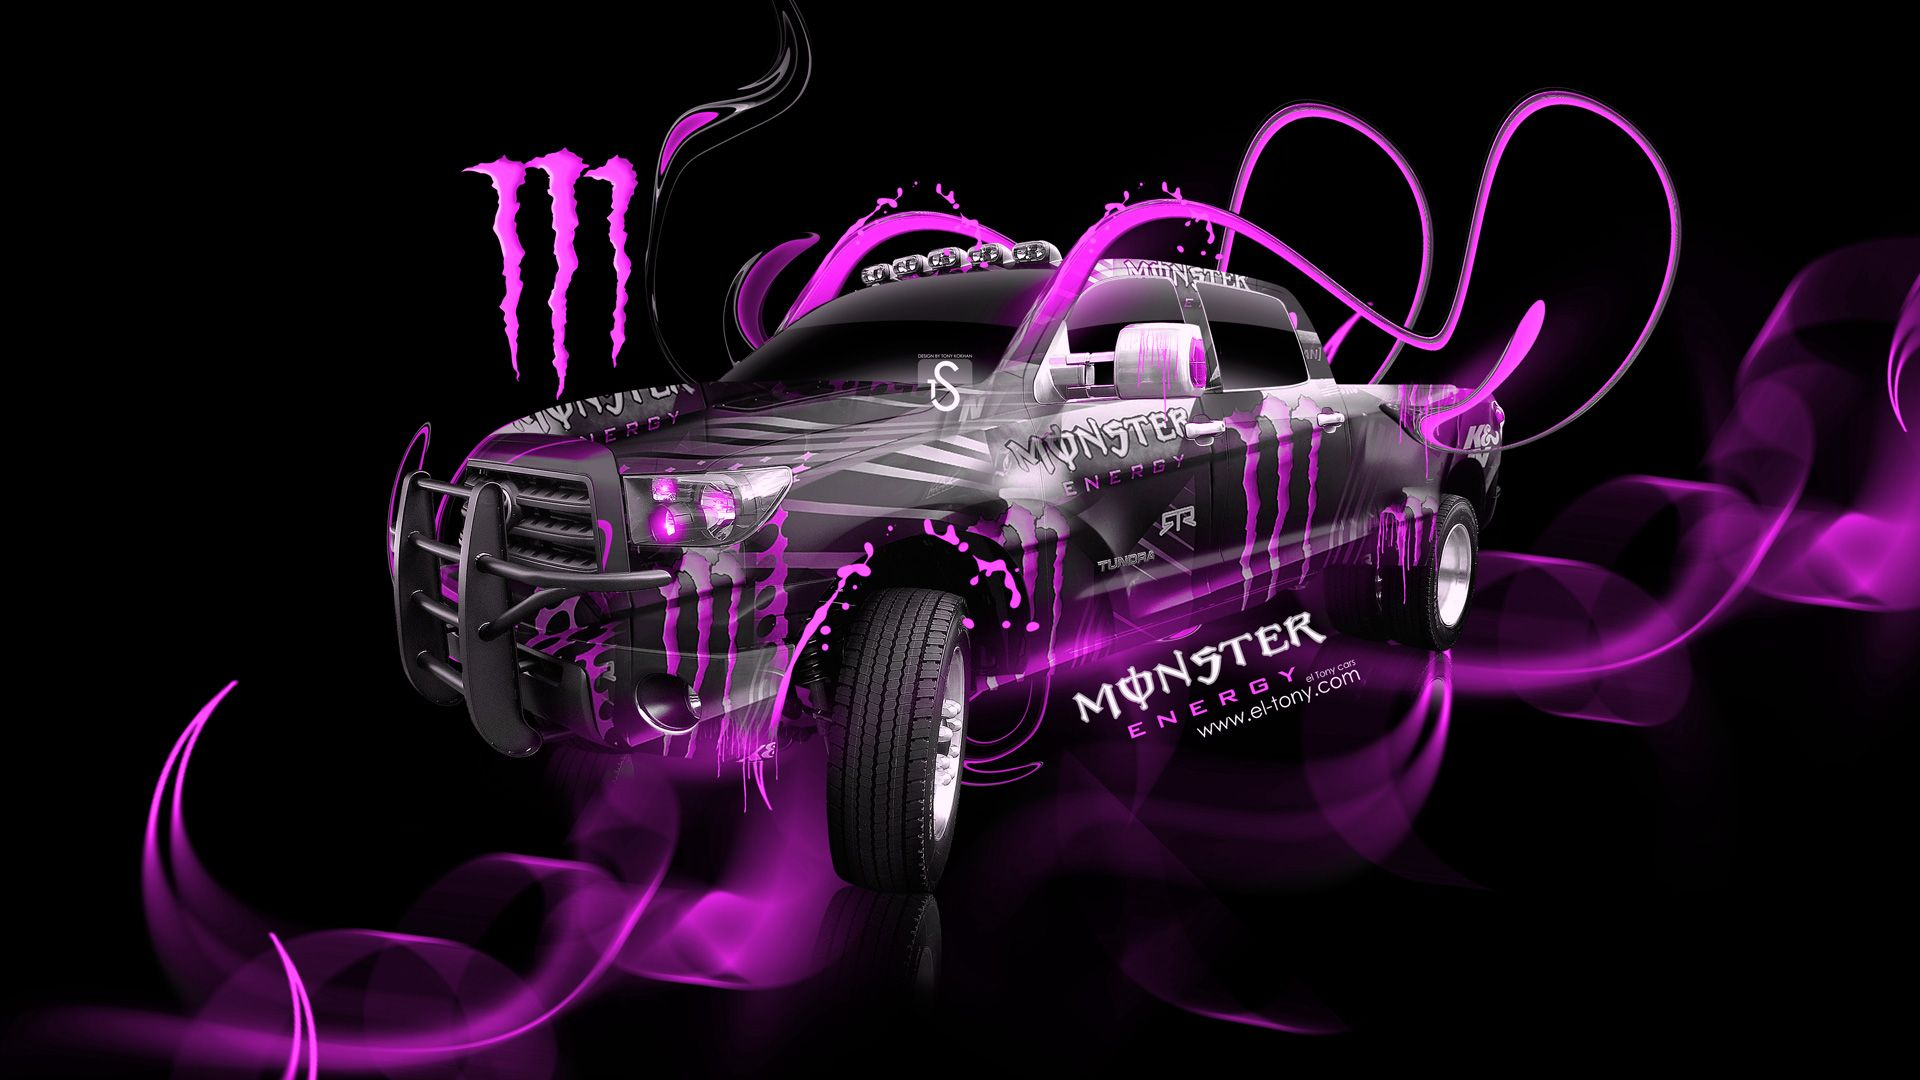 Gentil Pink Monster Energy Logo | Pink Monster Energy Wallpaper Monster Energy  Toyota Tundra